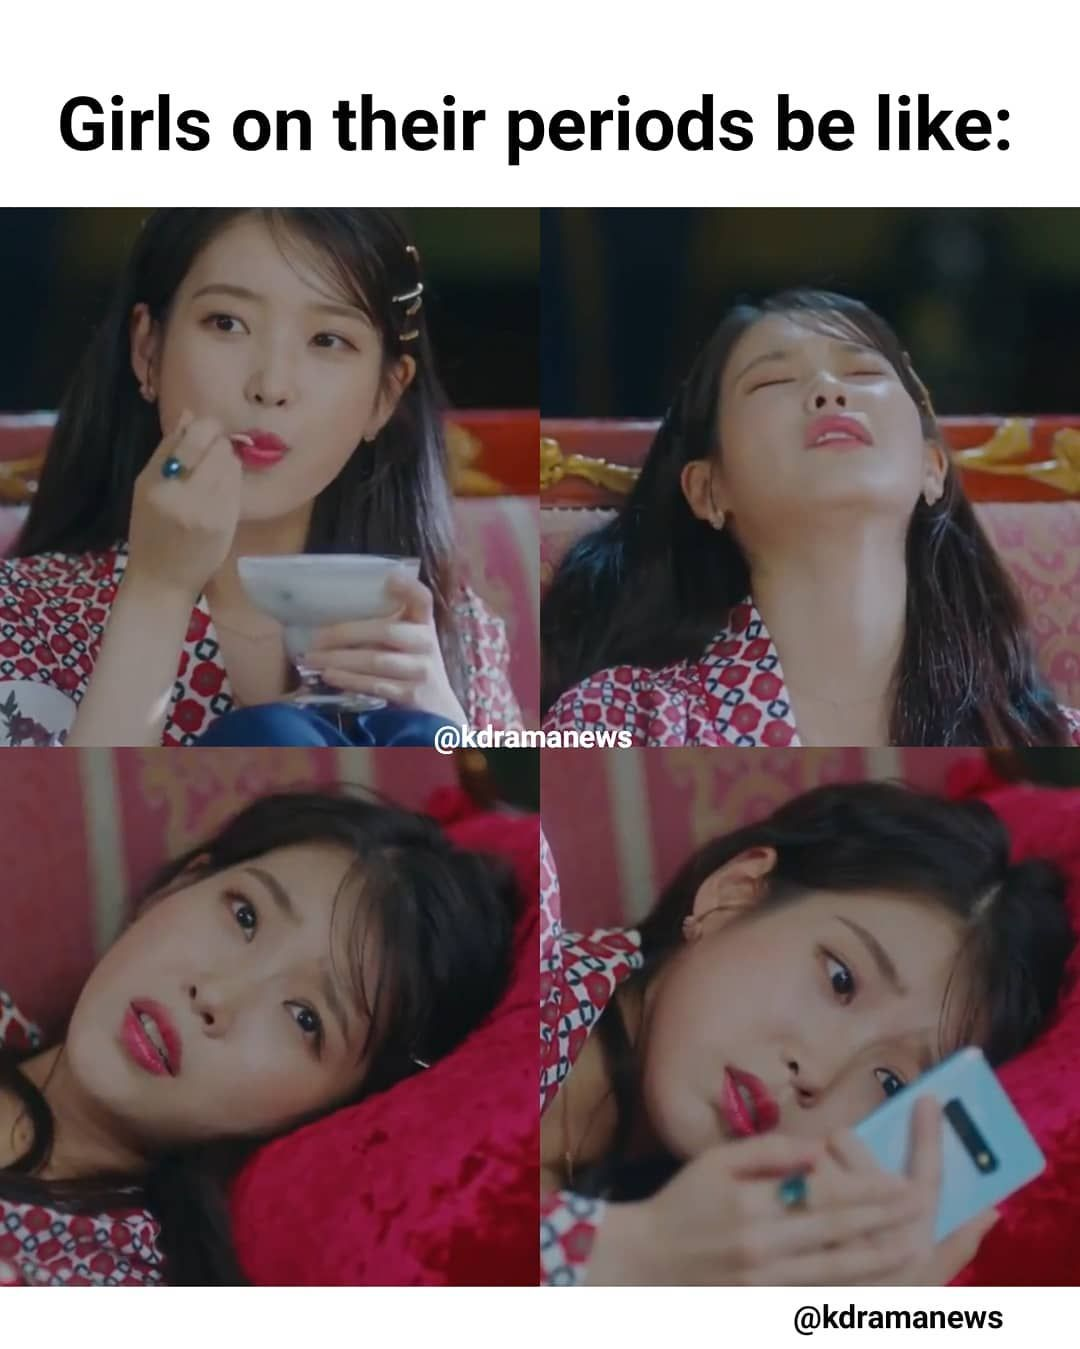 Kdrama On Instagram 4 Moods Of Girls On Their Periods By Iu Drama Hotel Del Luna Give Credit If Reposting Follow Kdramanews Kd Aktor Orang Hidup